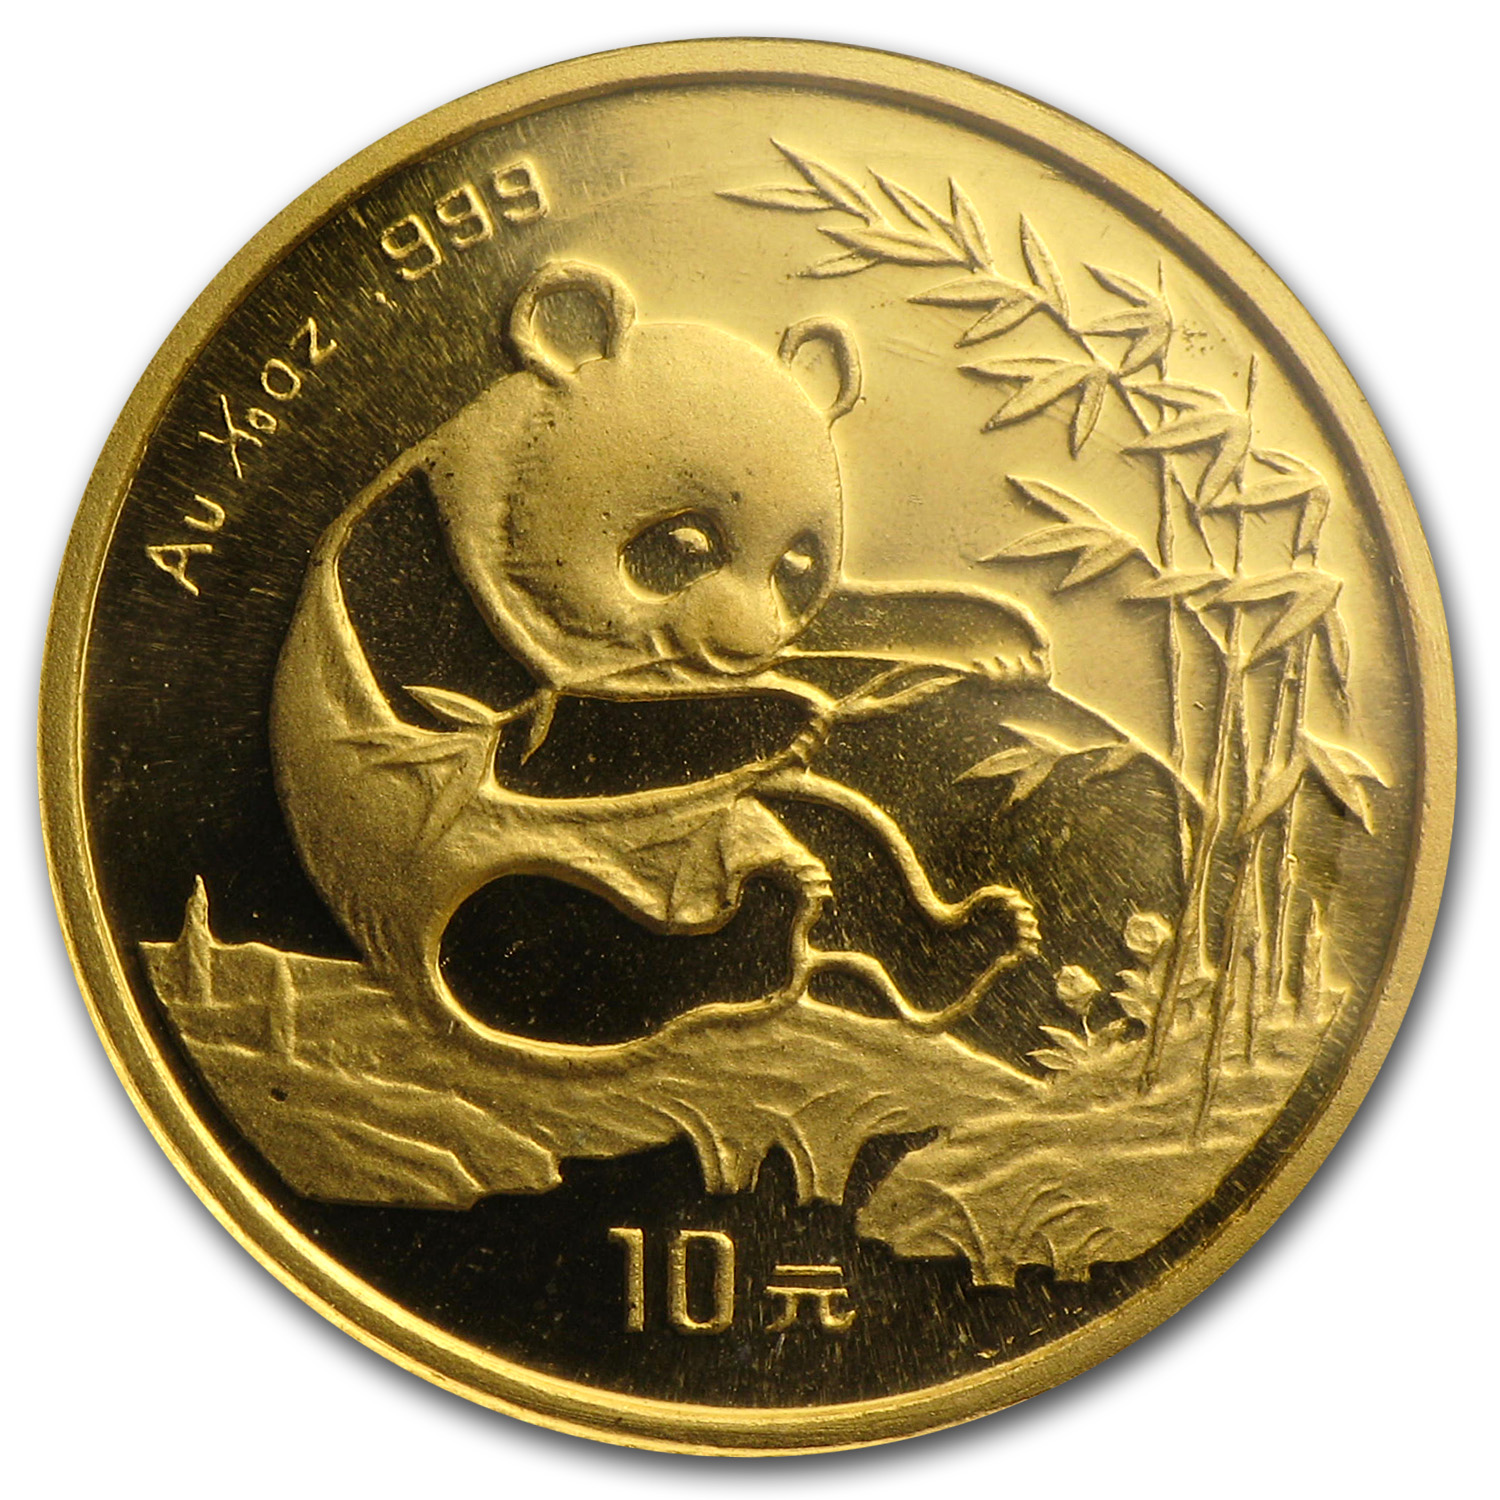 1994 China 1/10 oz Gold Panda Large Date BU (Sealed)